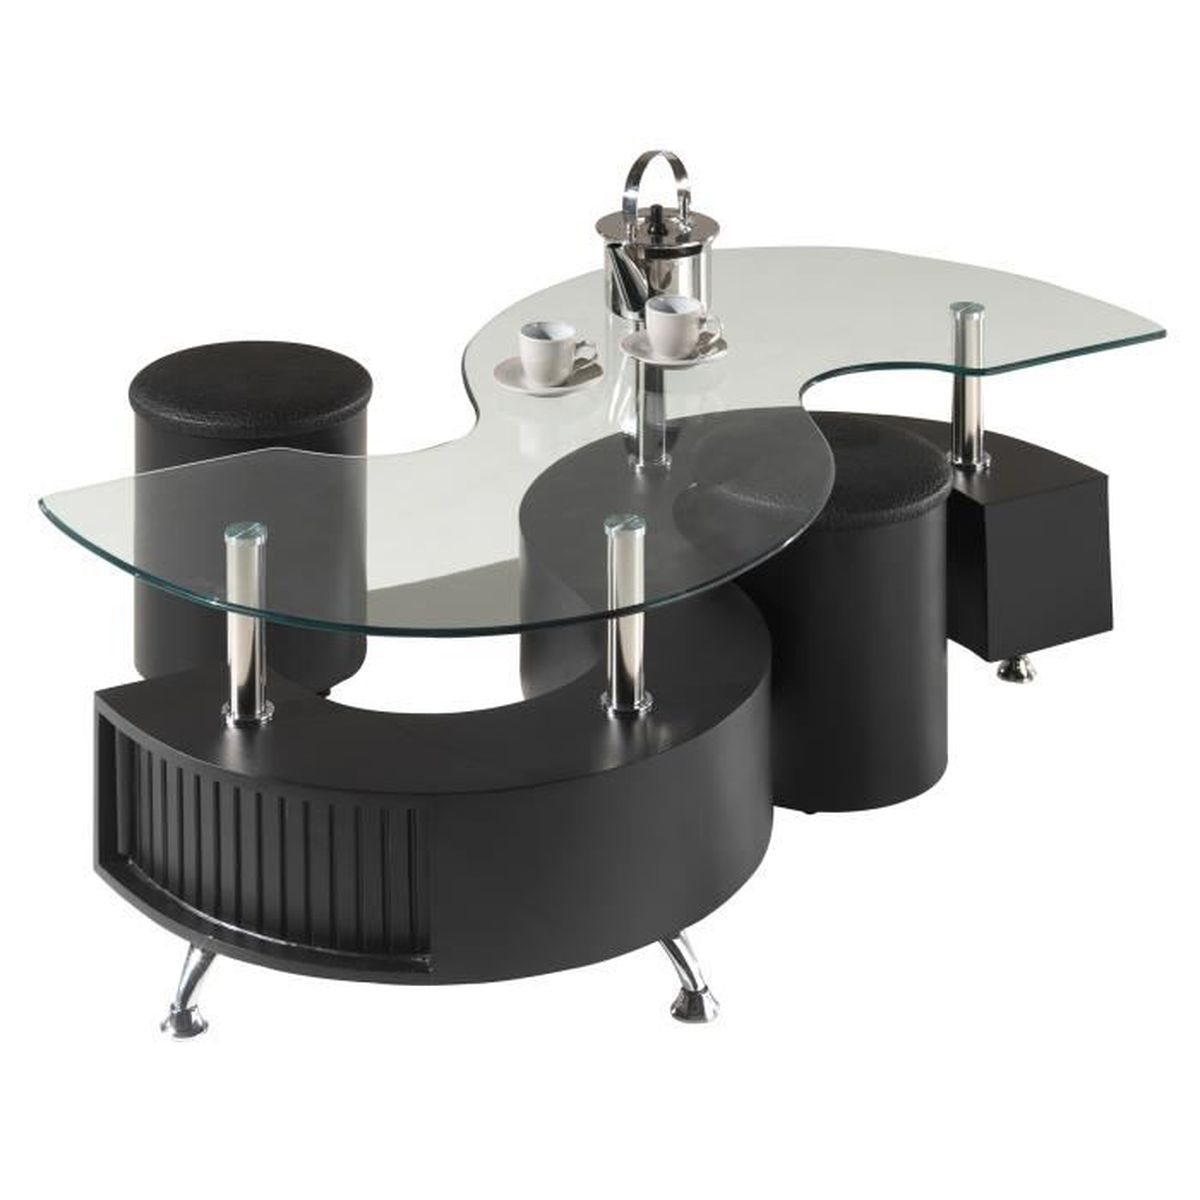 table basse design s avec 2 poufs en coloris noir noir. Black Bedroom Furniture Sets. Home Design Ideas